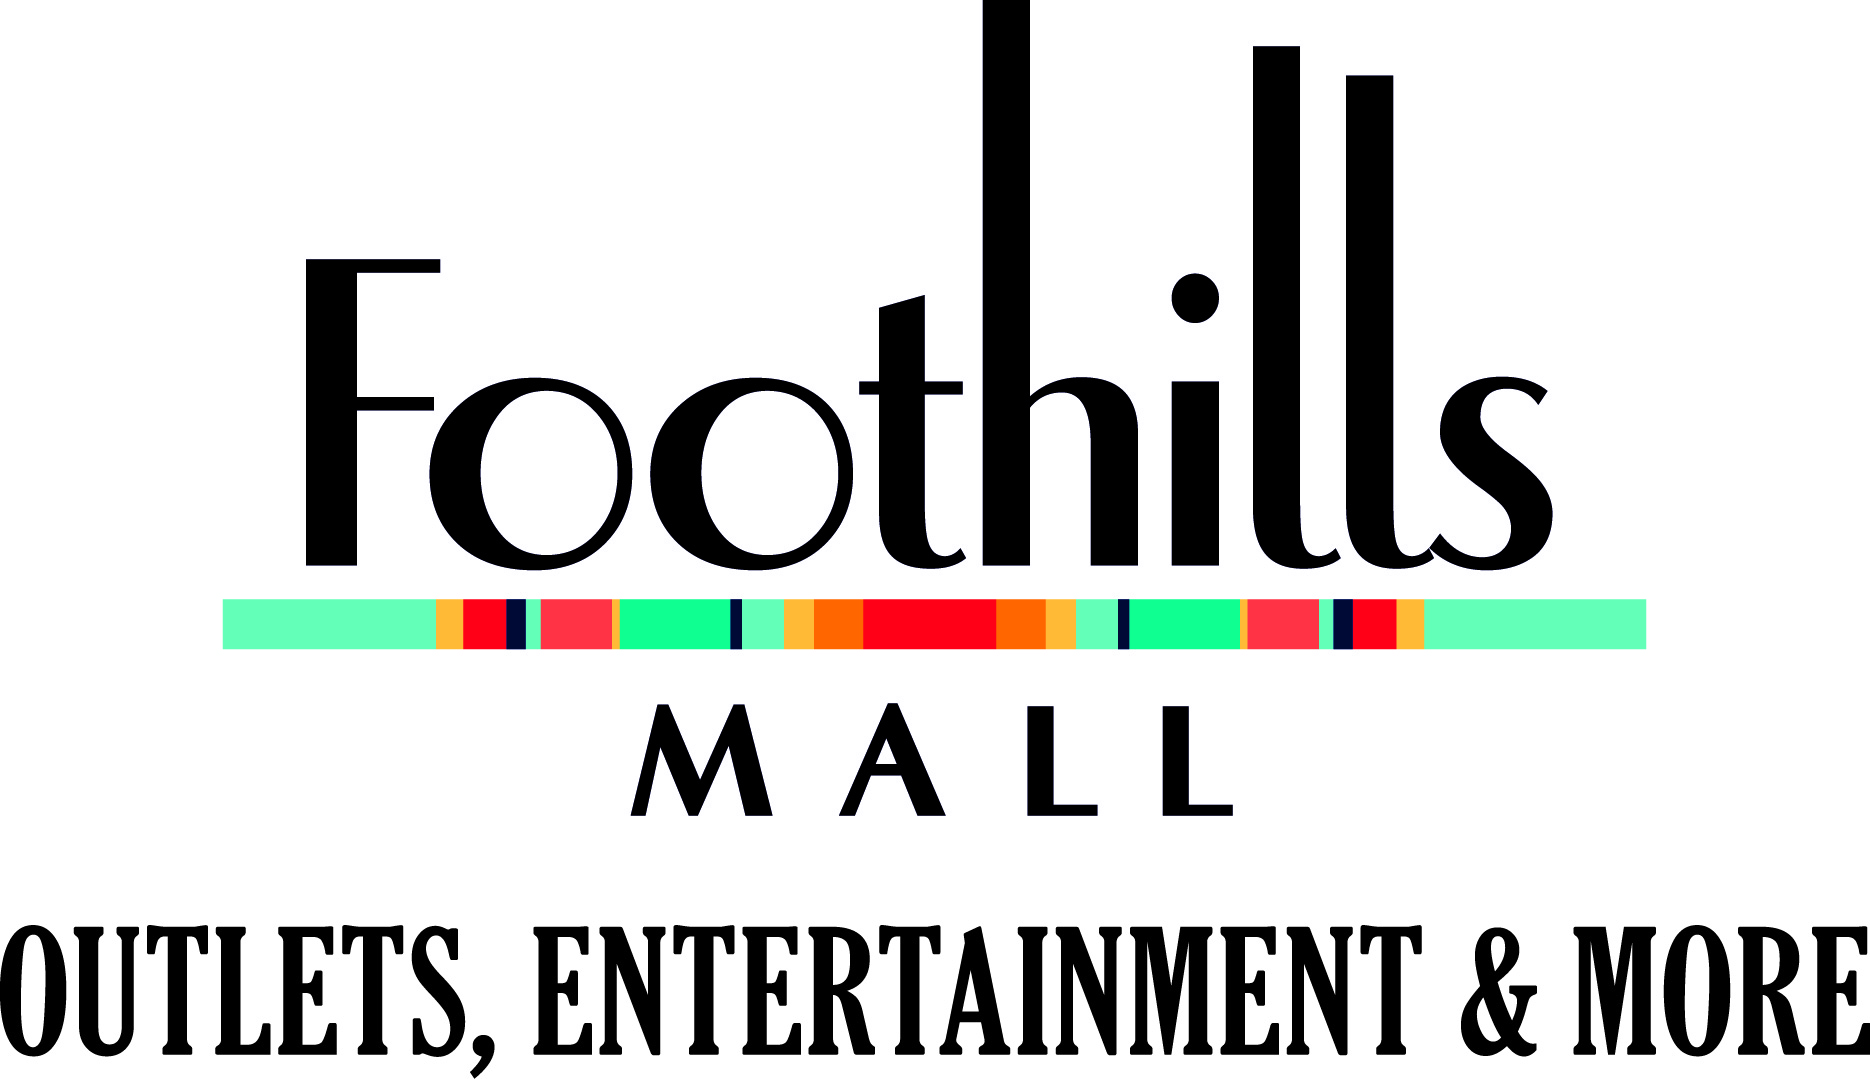 Foothills Mall Logo